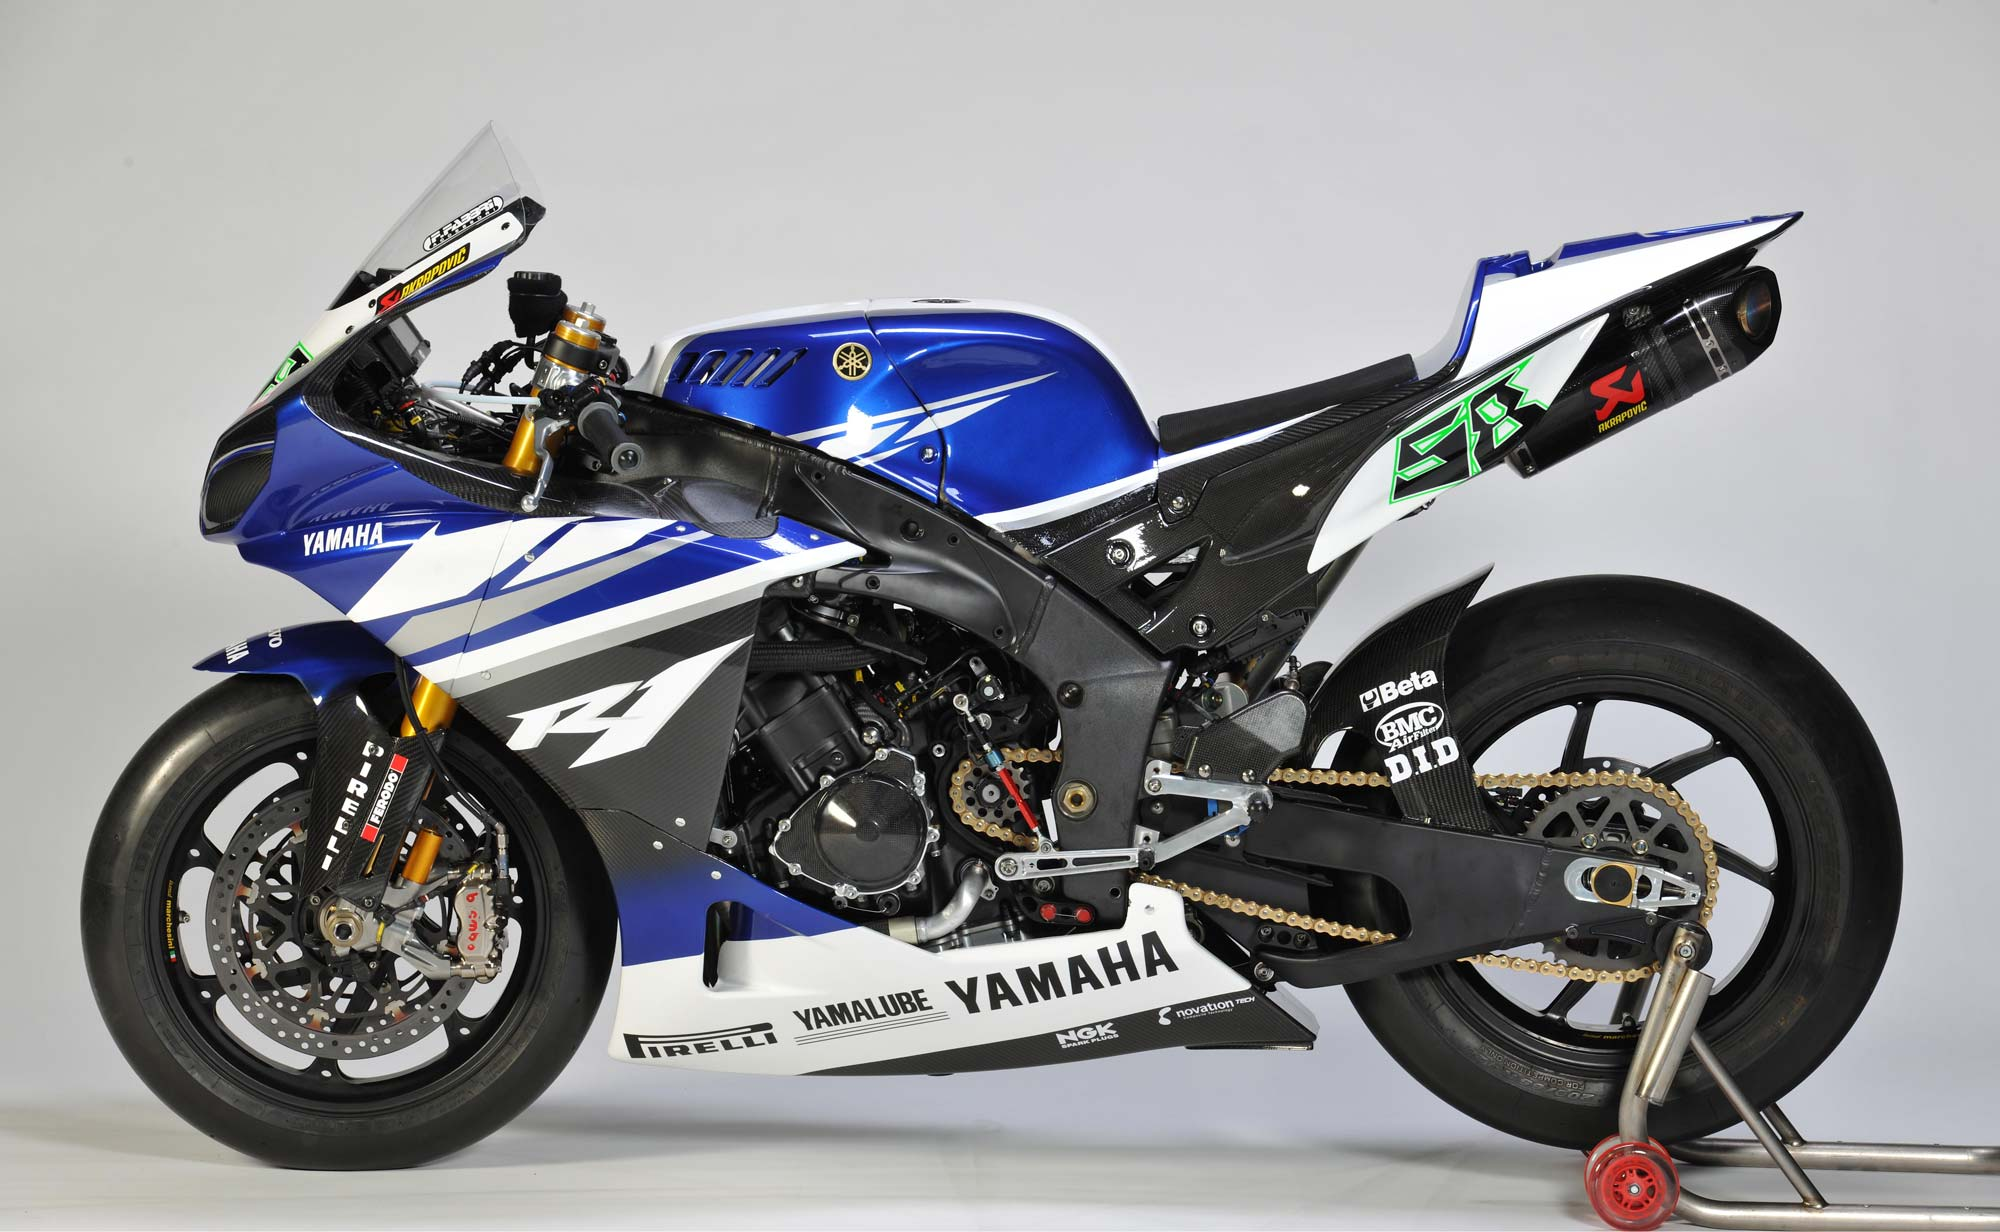 yamaha-racing-2011-wsbk-livery-3Yamaha Racing Bike